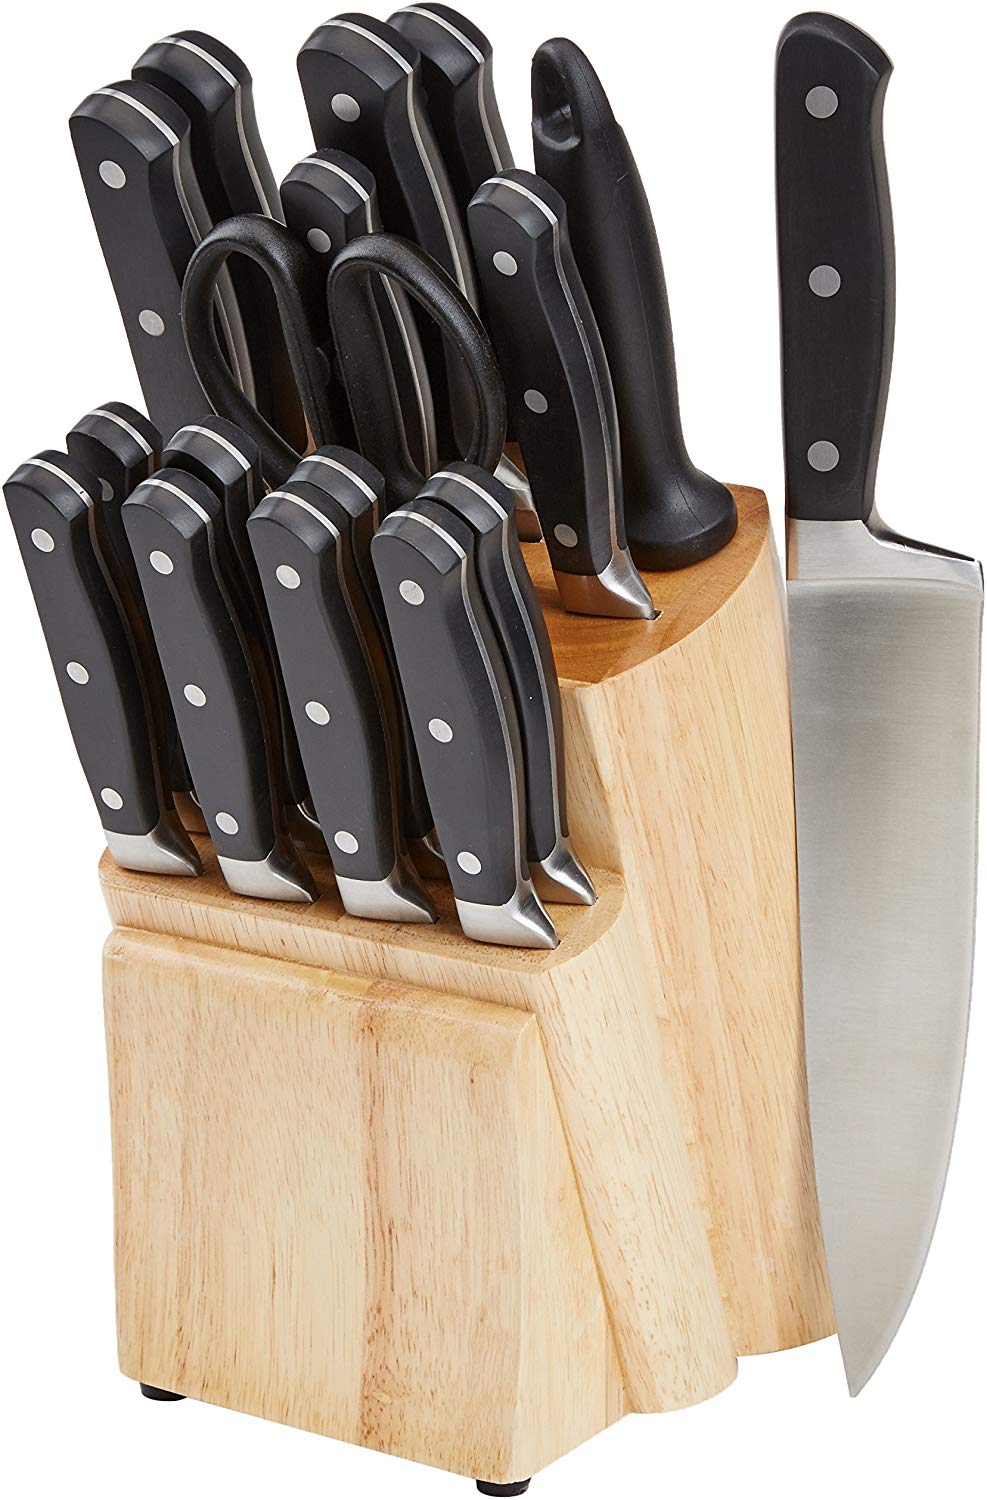 AmazonBasics Premium 18-Piece set